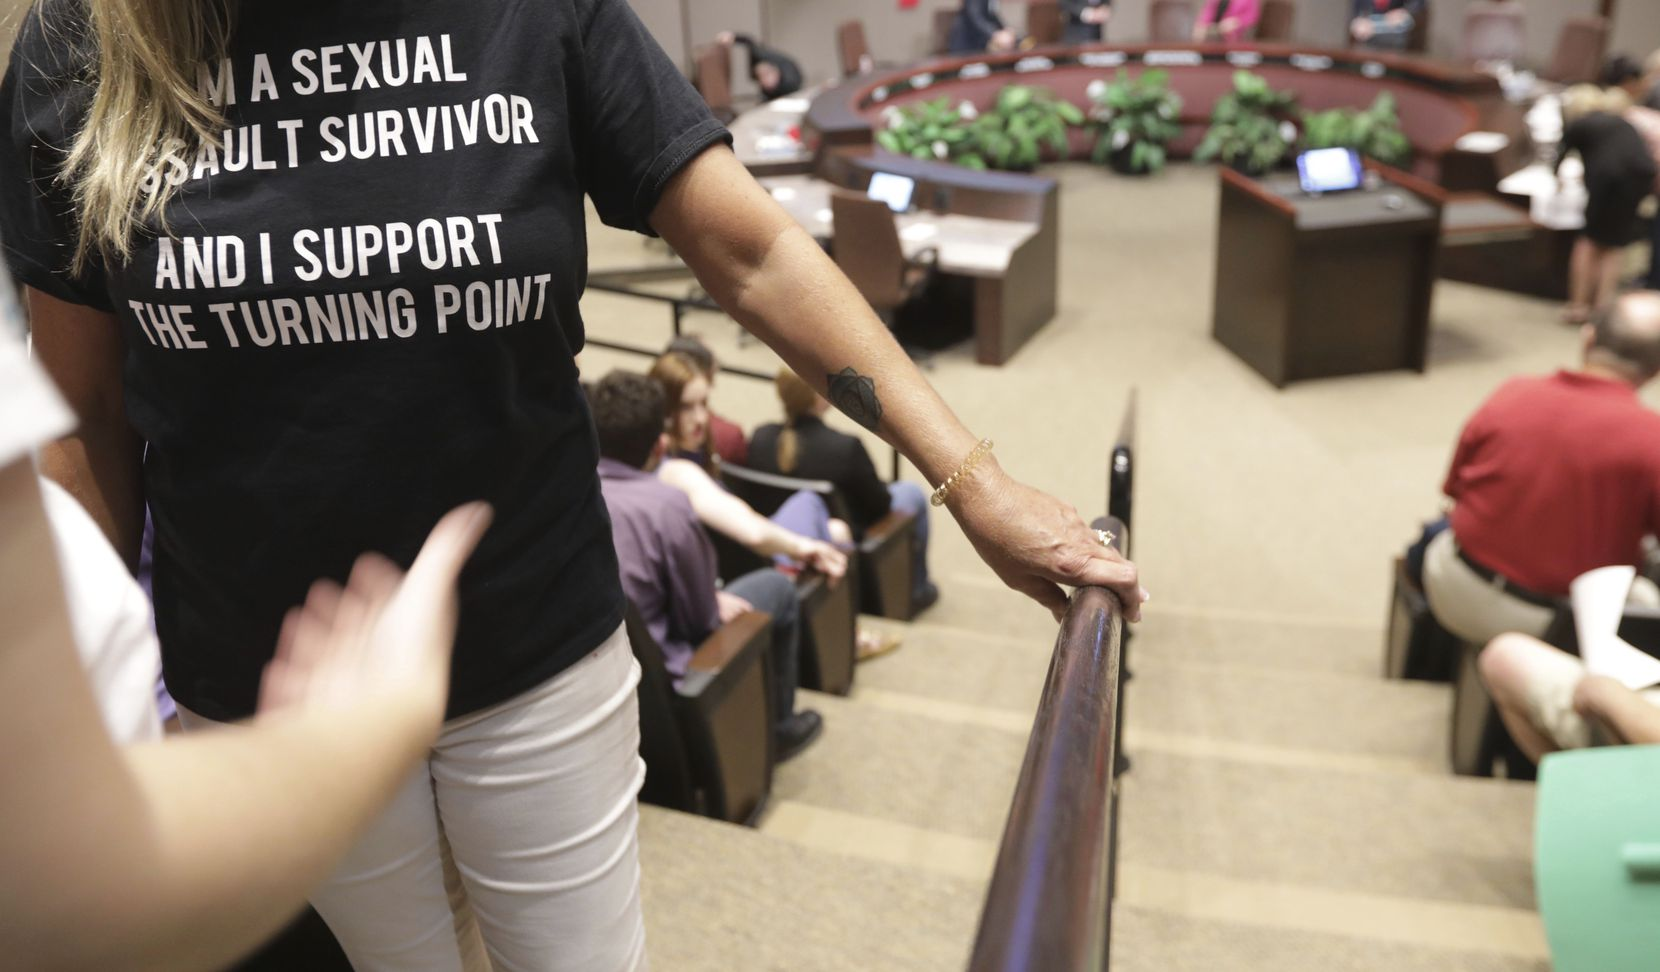 """A person wearing a t-shirt saying """"I am a sexual assault survivor"""" waits to speaks in support of The Turning Point rape crisis center, during the Plano City Council meeting on Monday, Aug. 12, 2019 in Plano, Texas."""